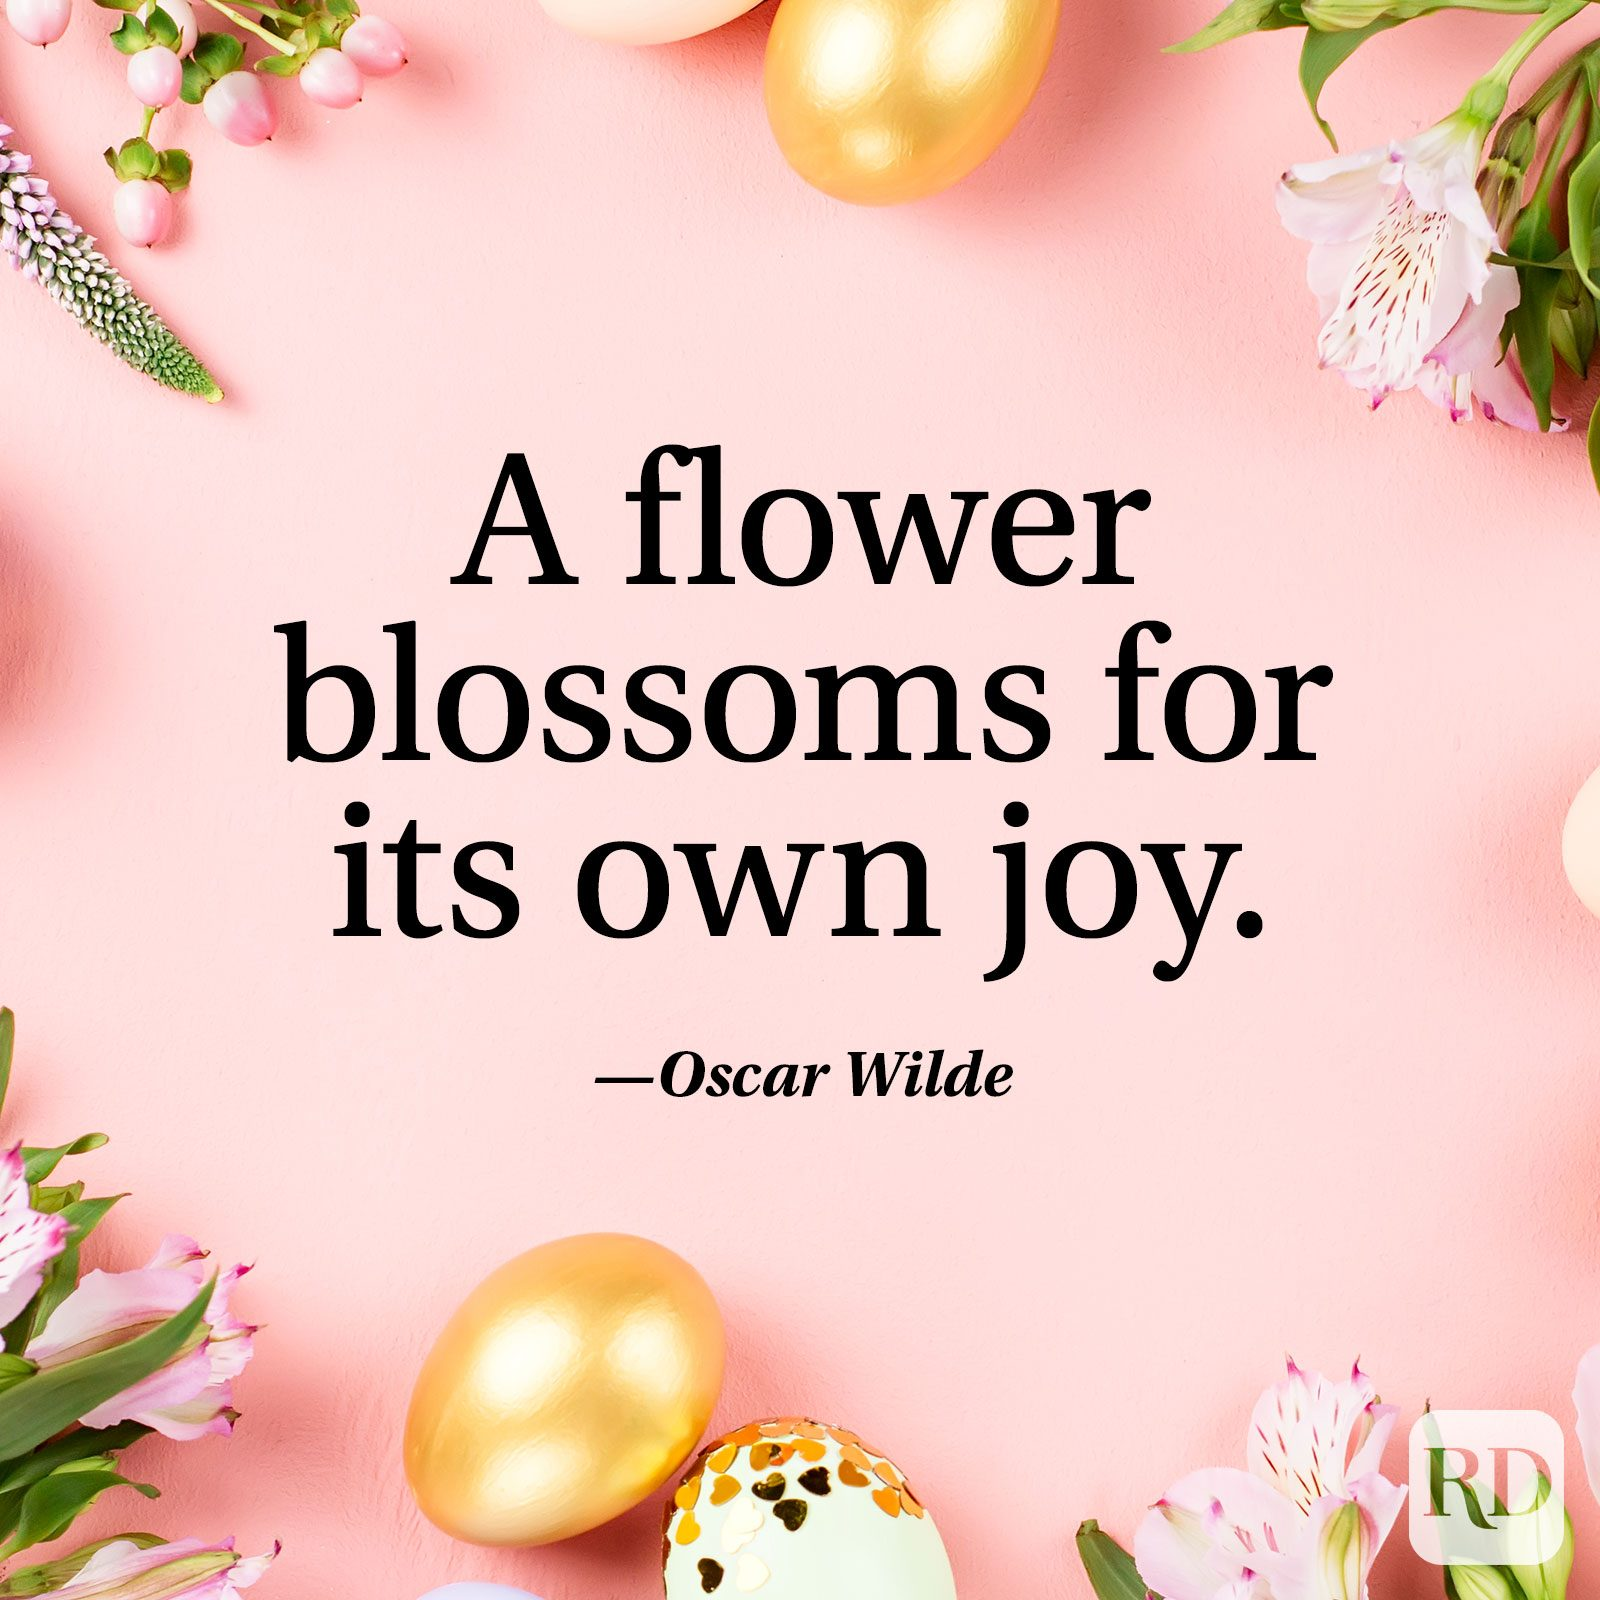 """A flower blossoms for its own joy."" — Oscar Wilde"